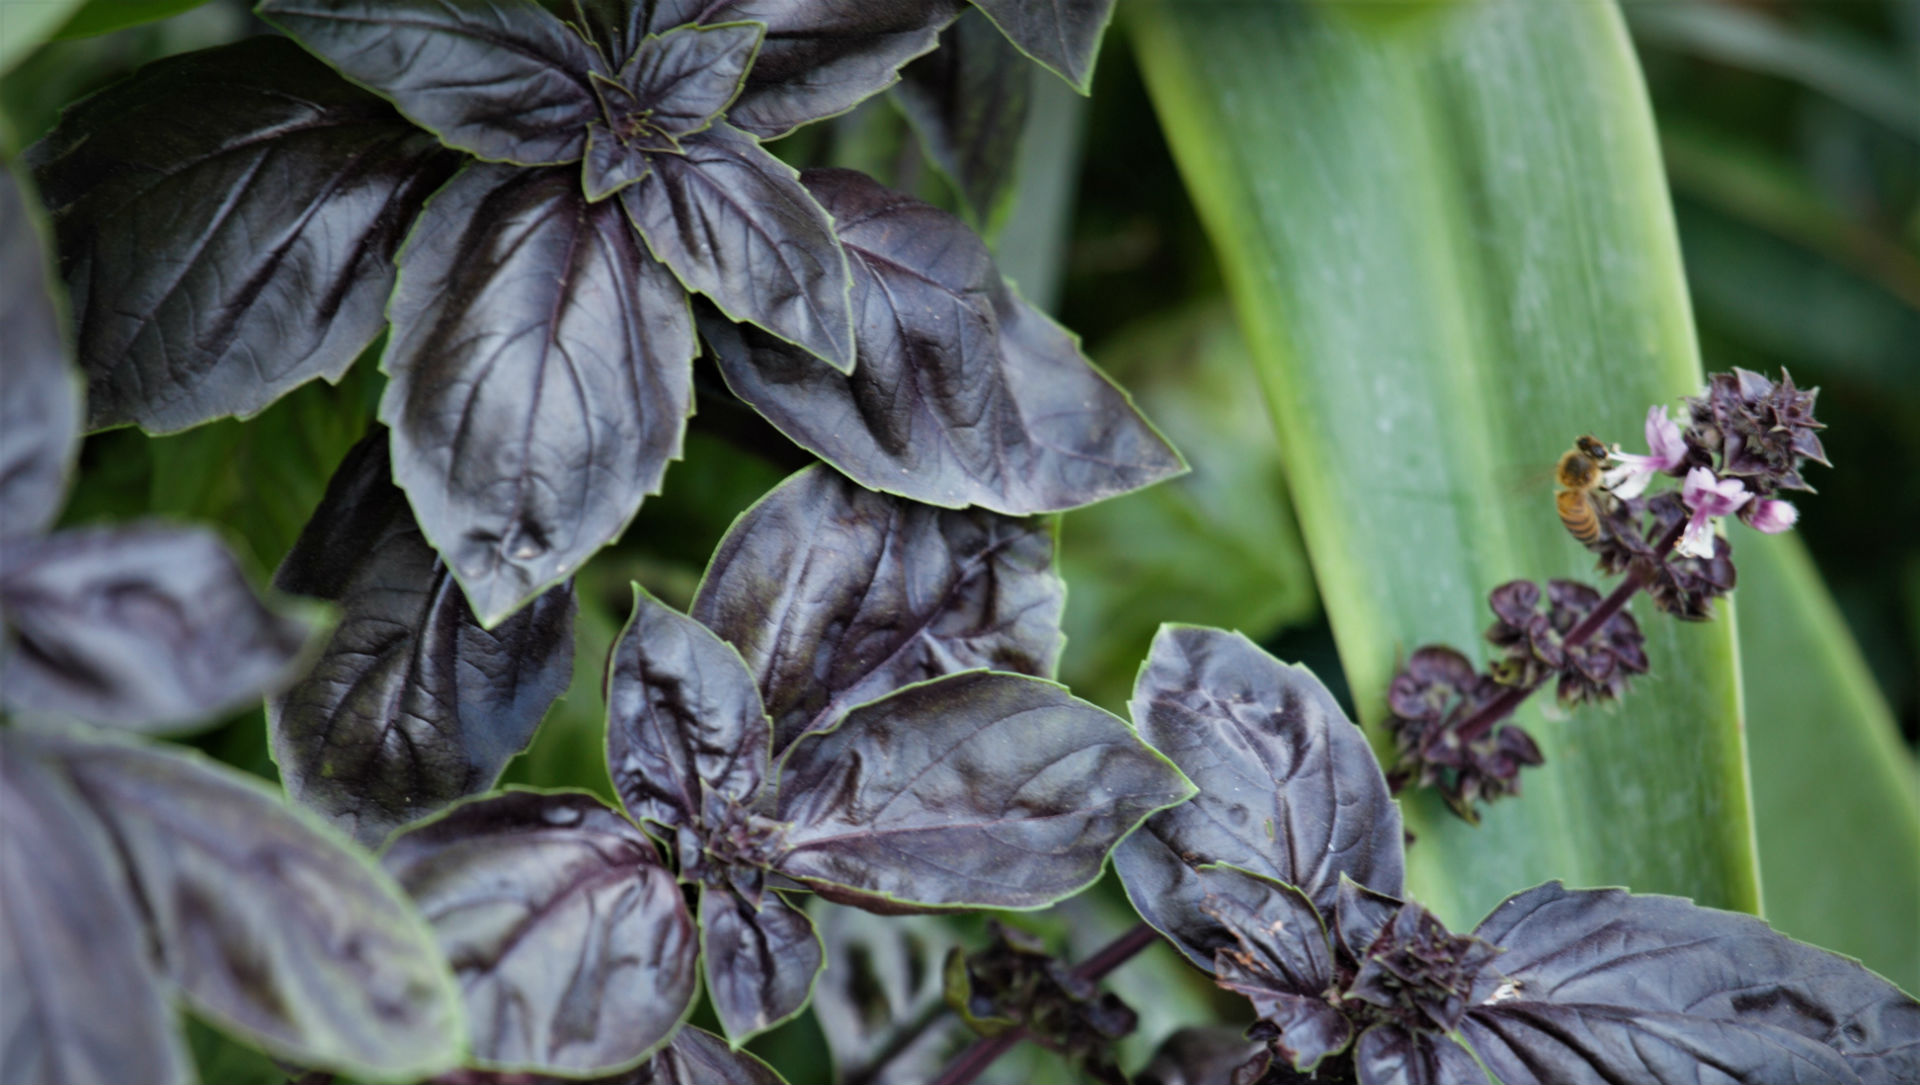 Certain basil specimens displays rich purple coloring